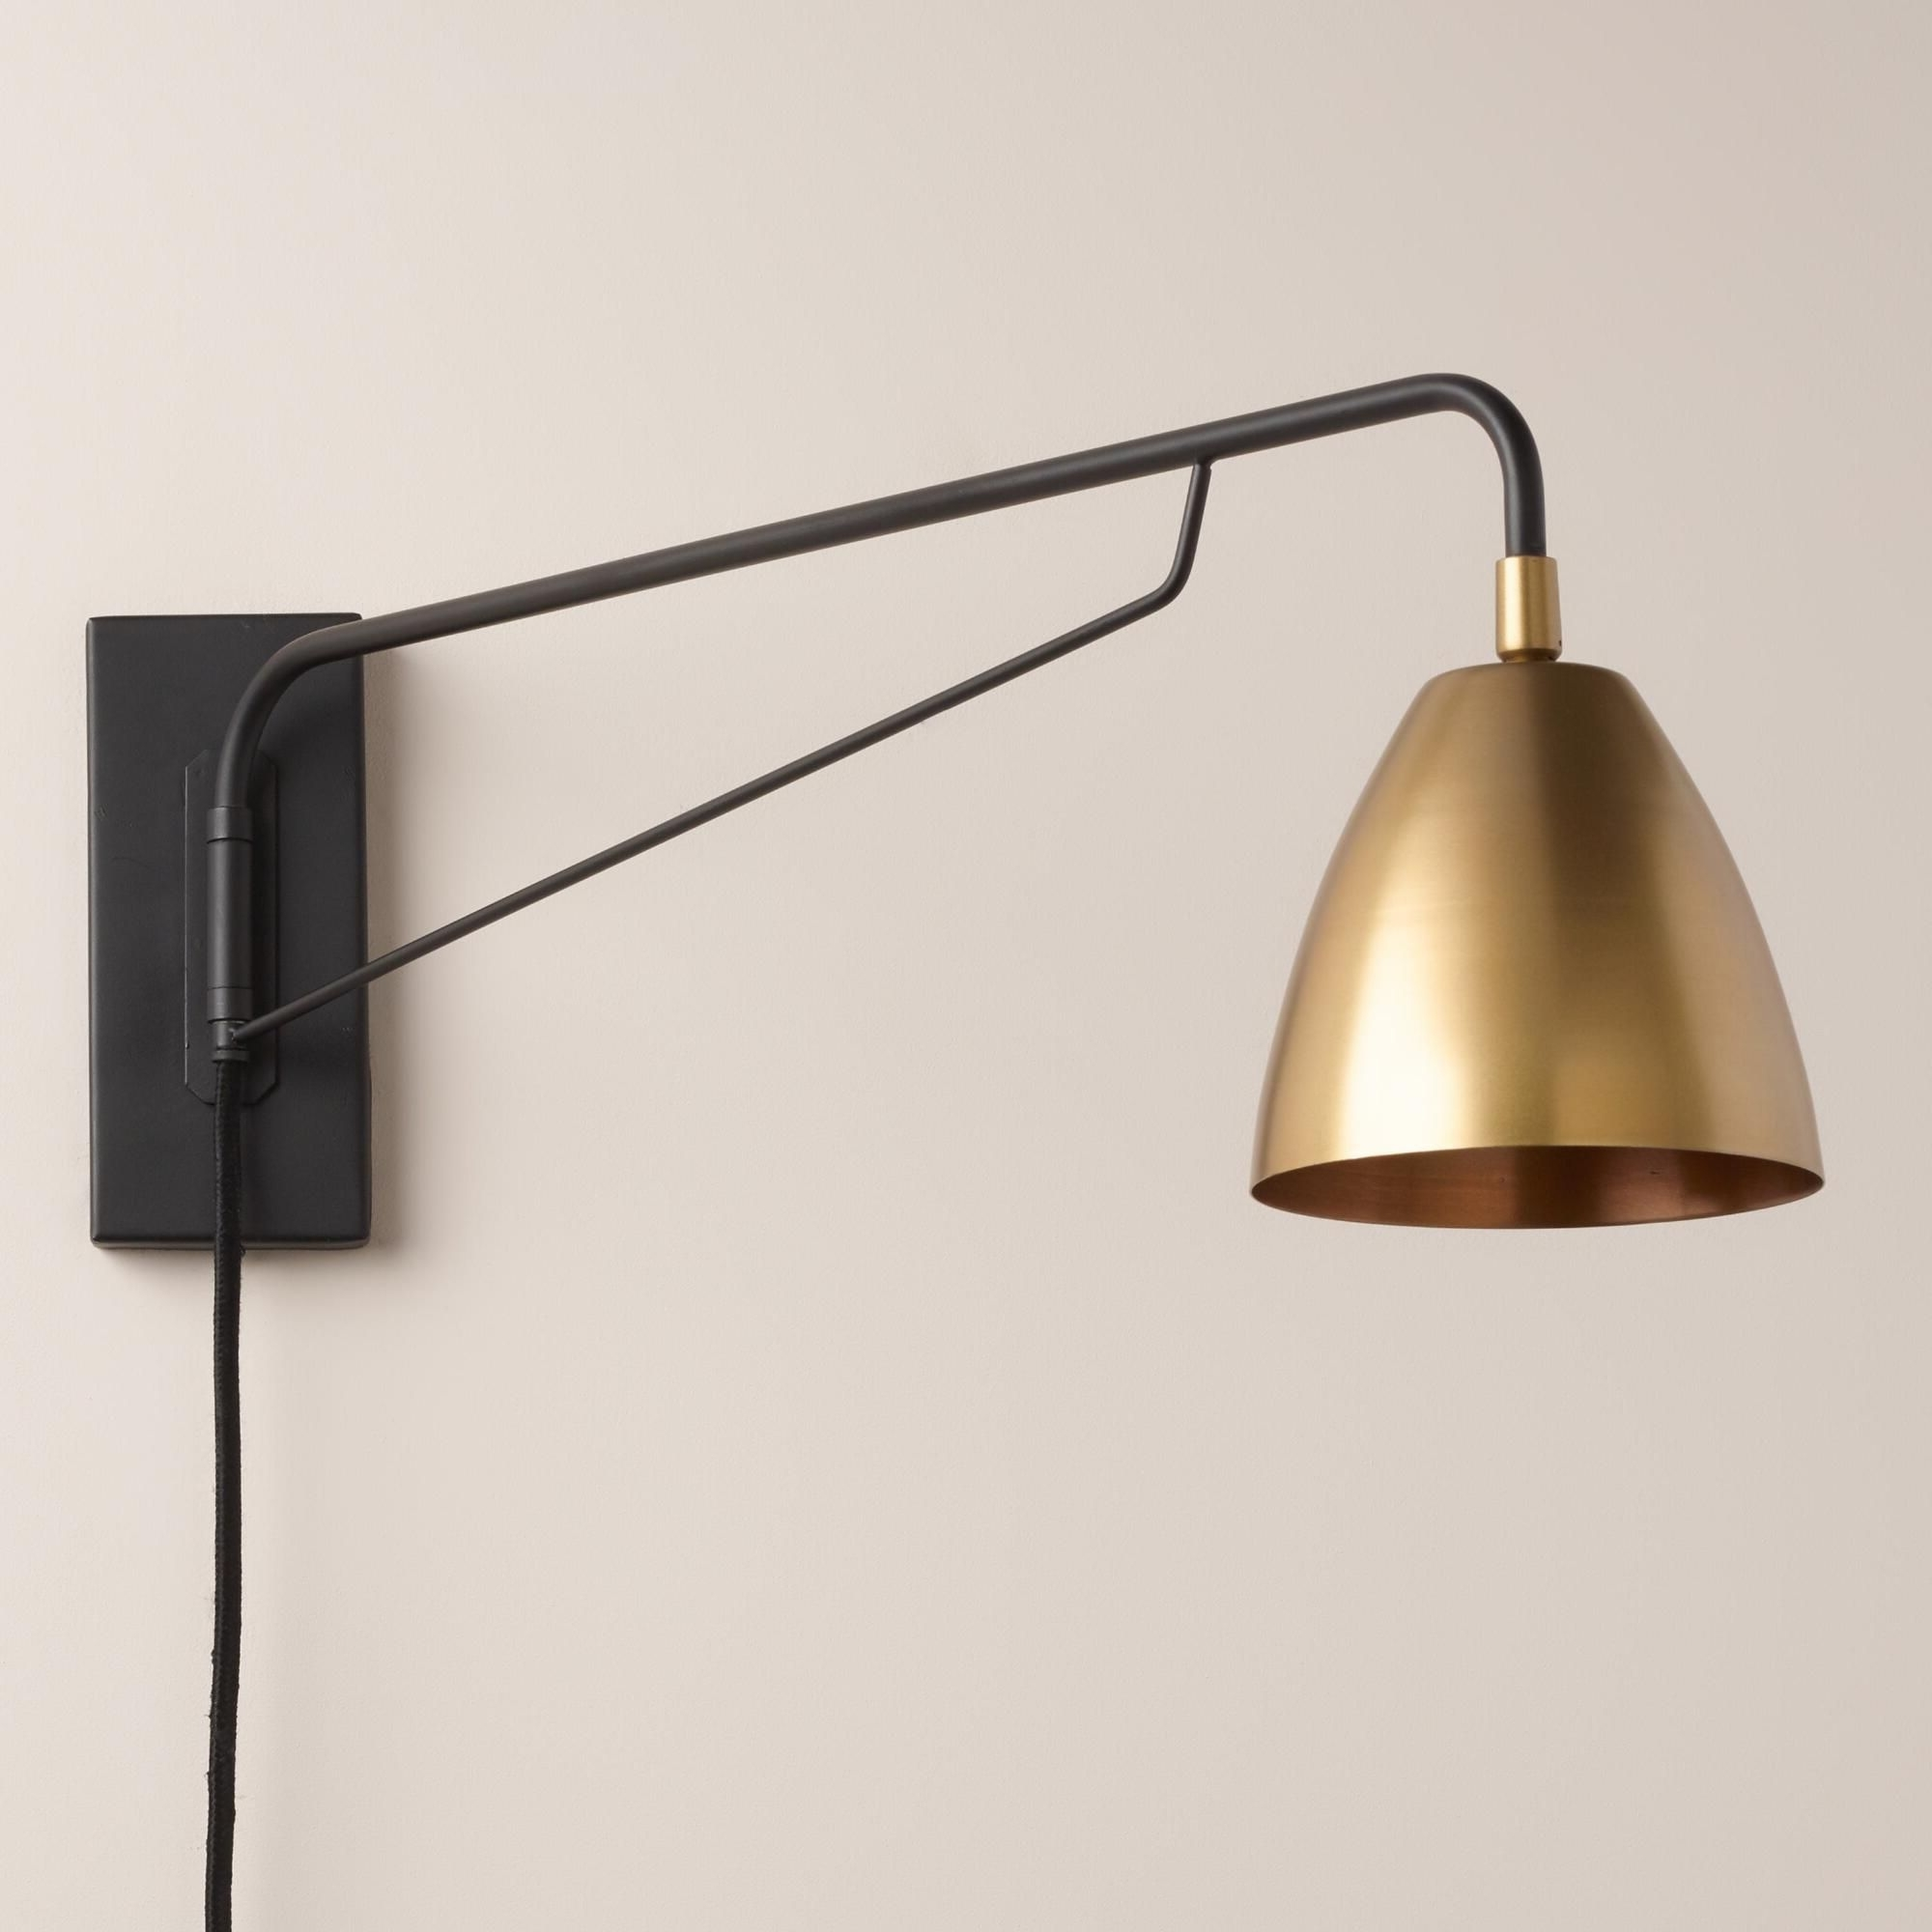 2019 Crafted With A Pivoting Arm And Adjustable Antique Brass Shade With Regard To Outdoor Wall Lights With Plug (View 1 of 20)